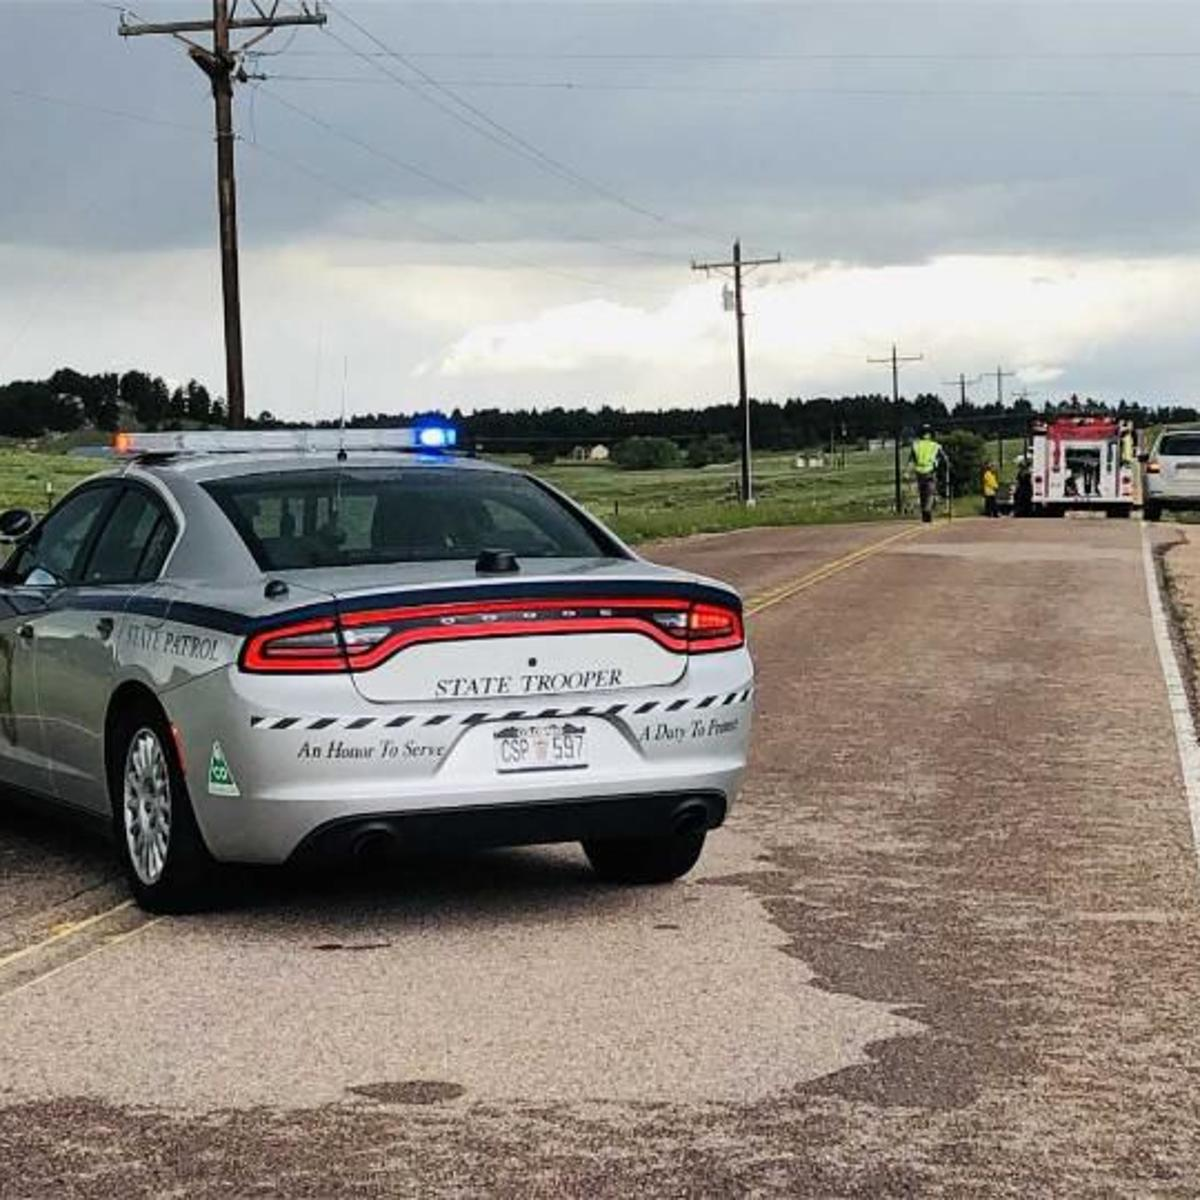 2 mules pulling carriage killed in crash east of Colorado